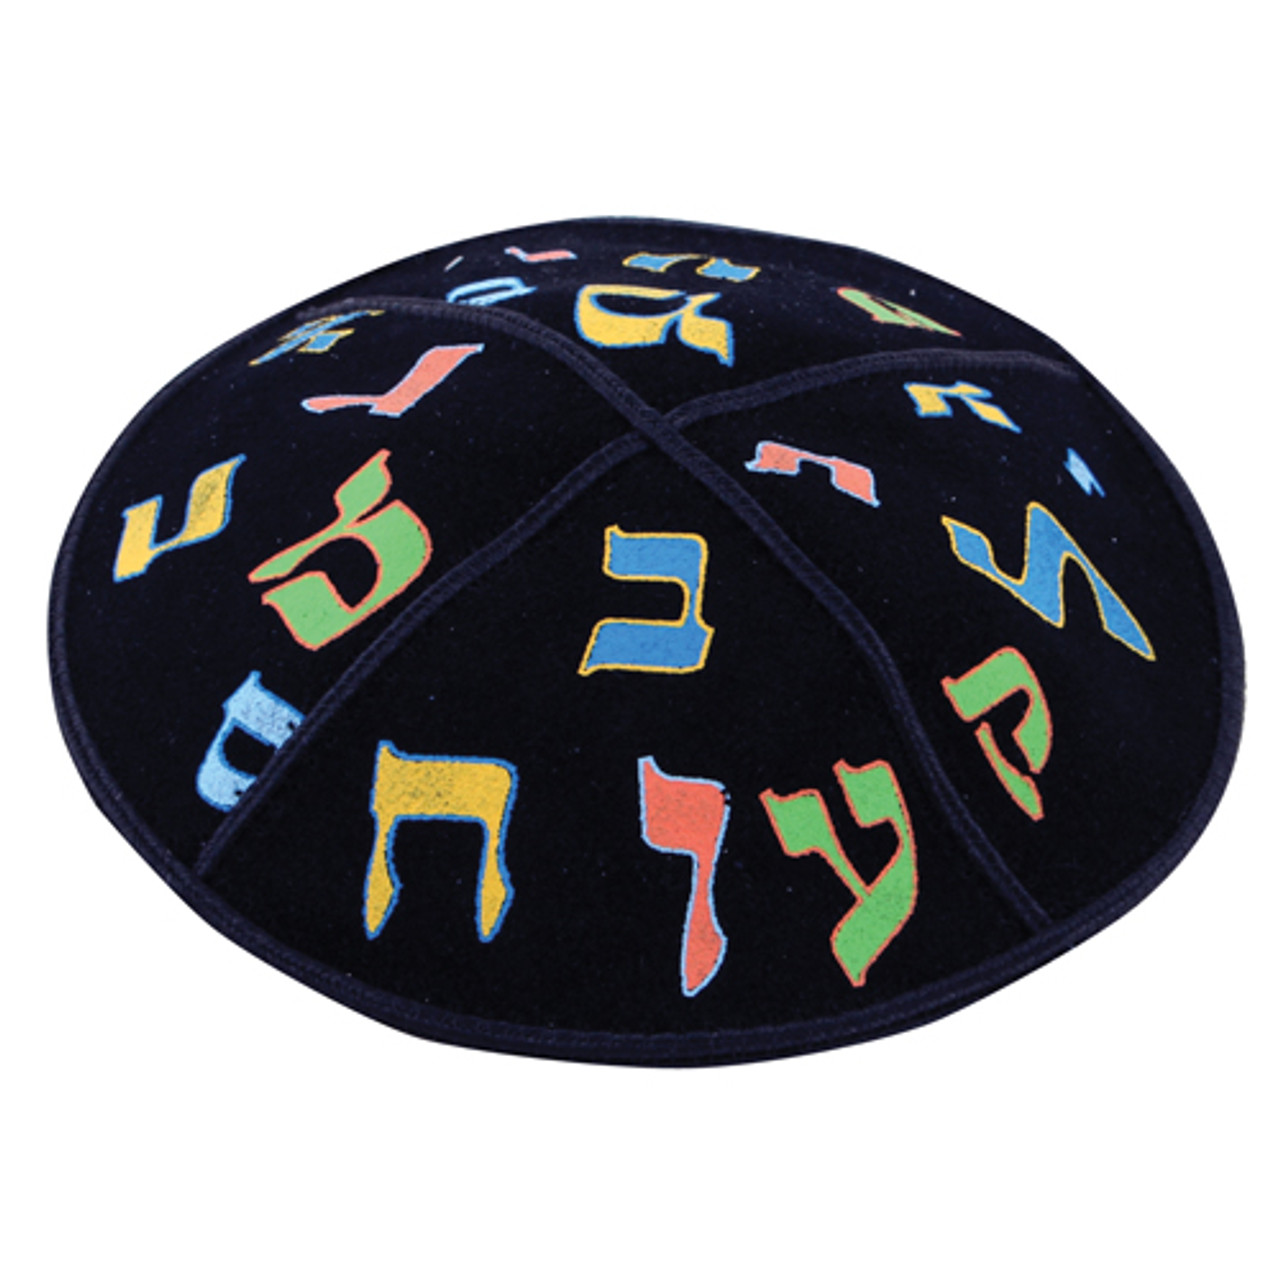 Leather Aleph-Beit Kippah